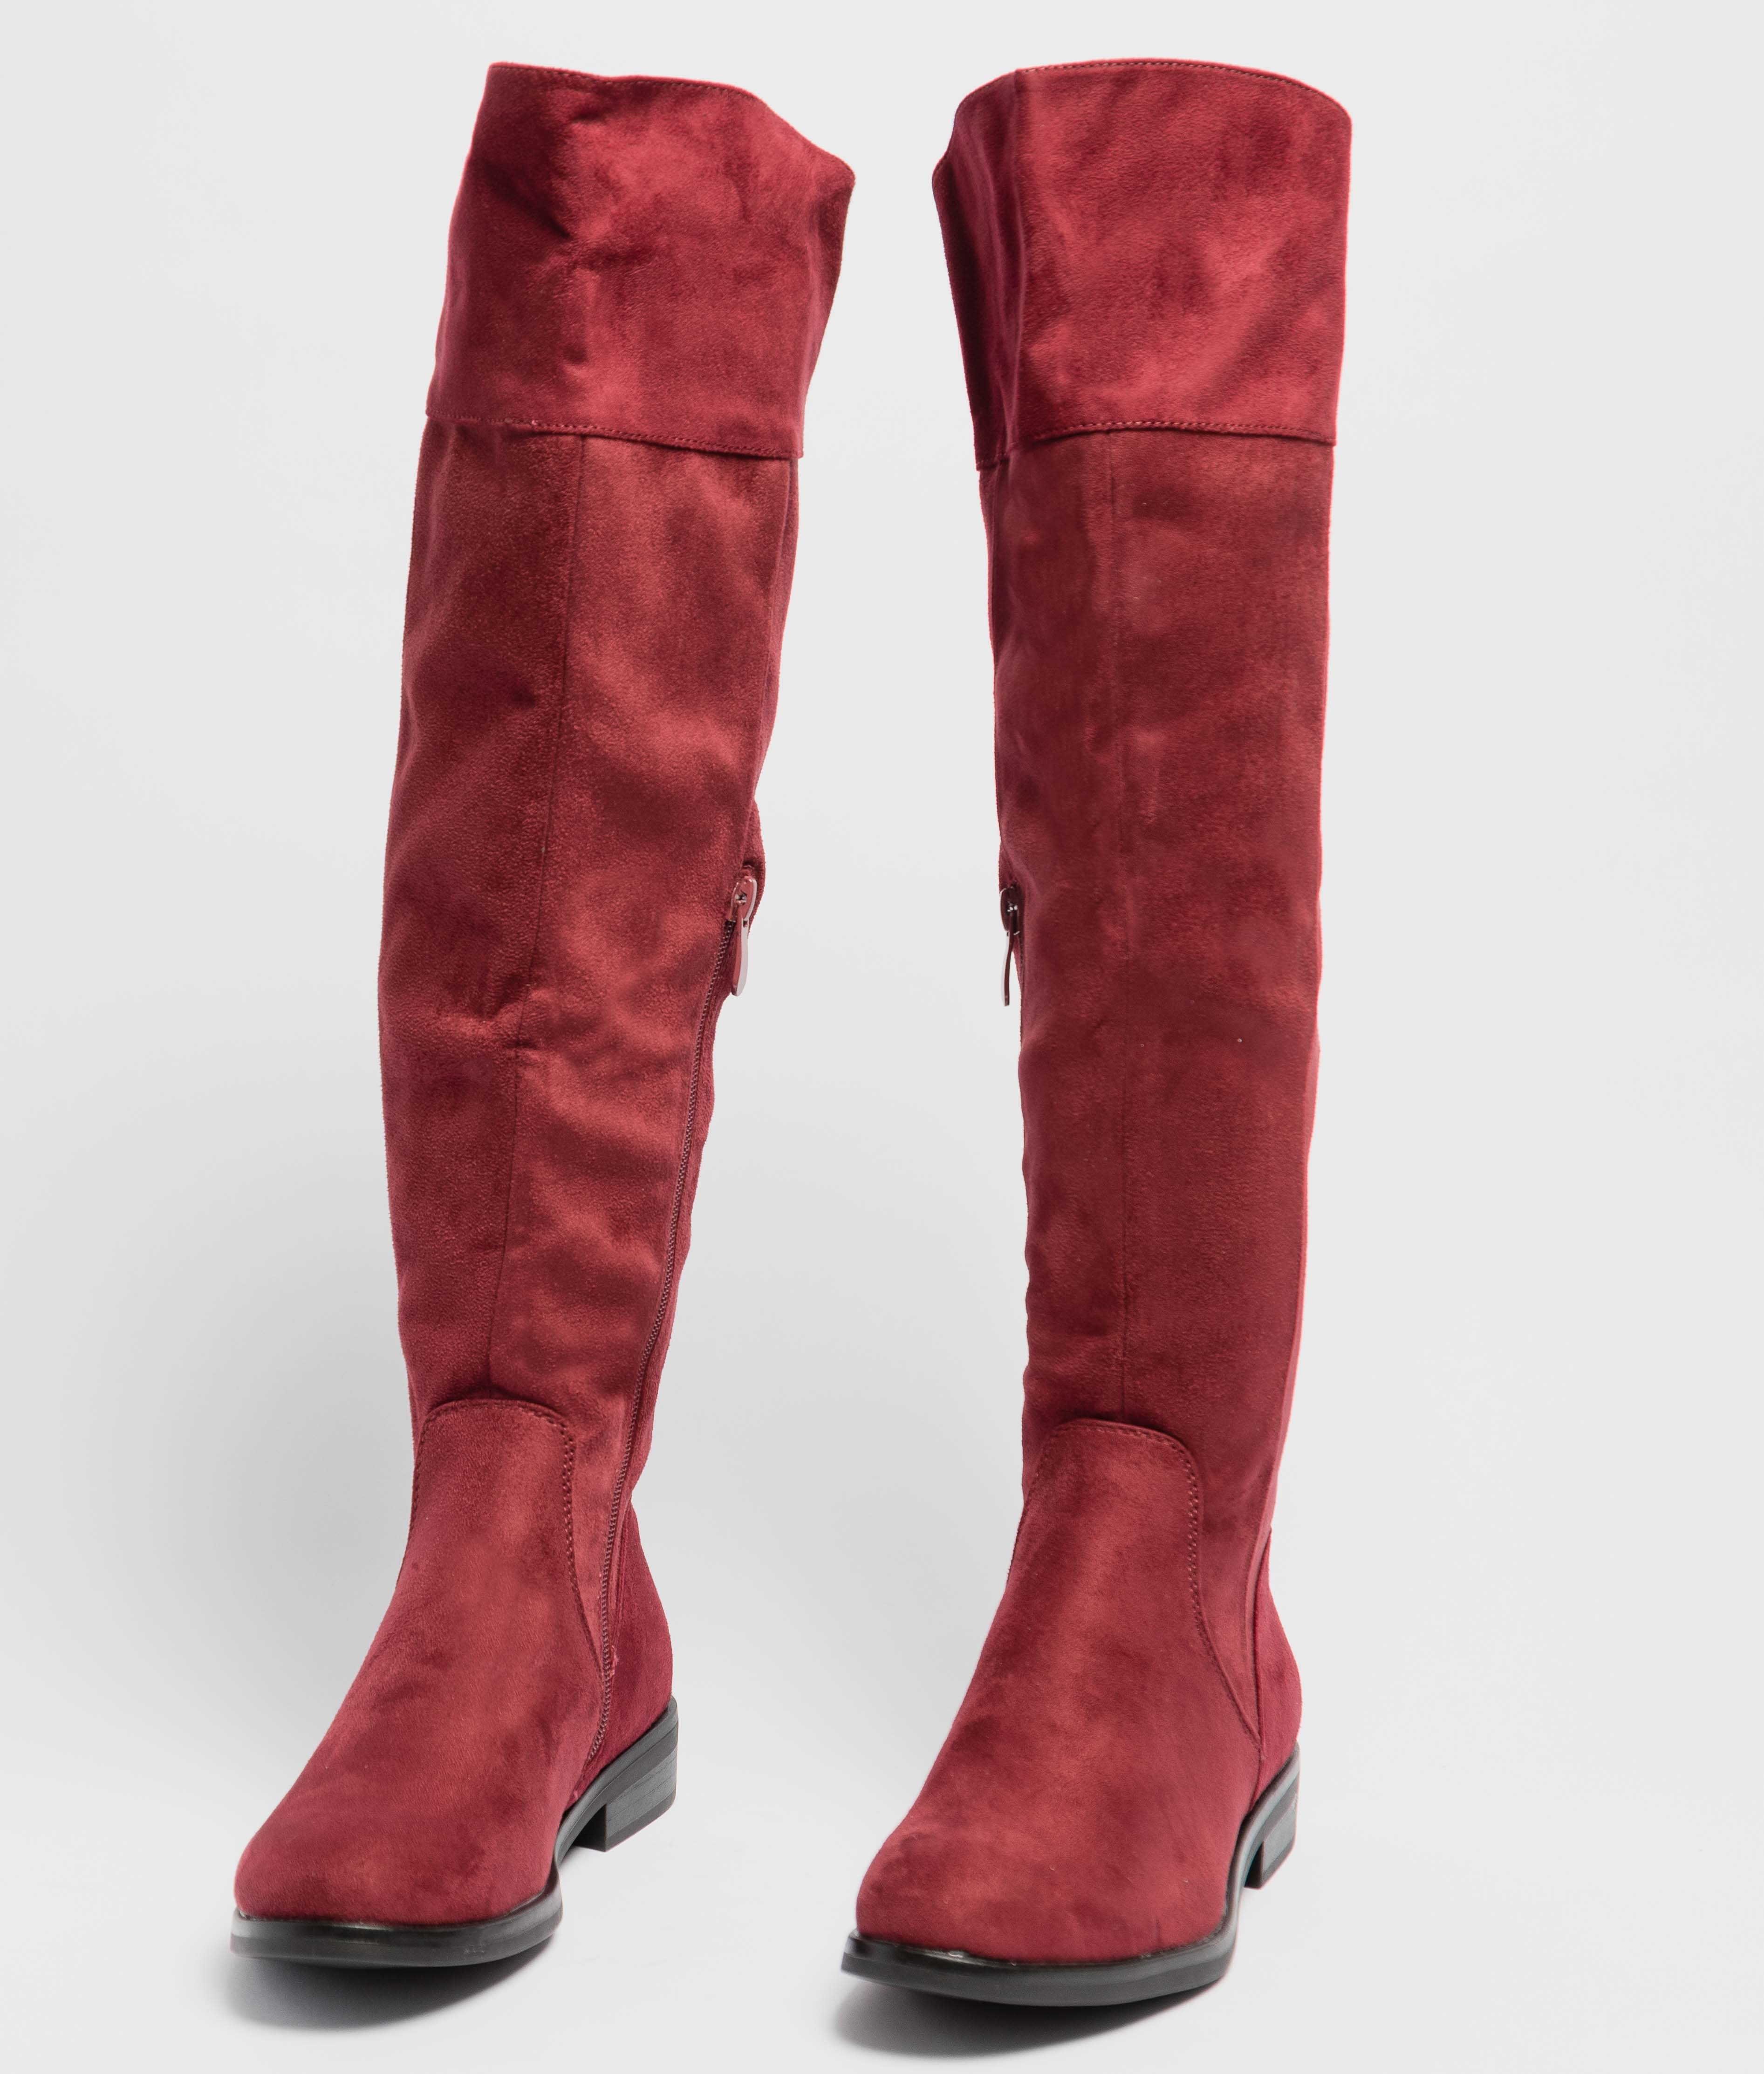 Knee-length Boot Chalen - Maroon